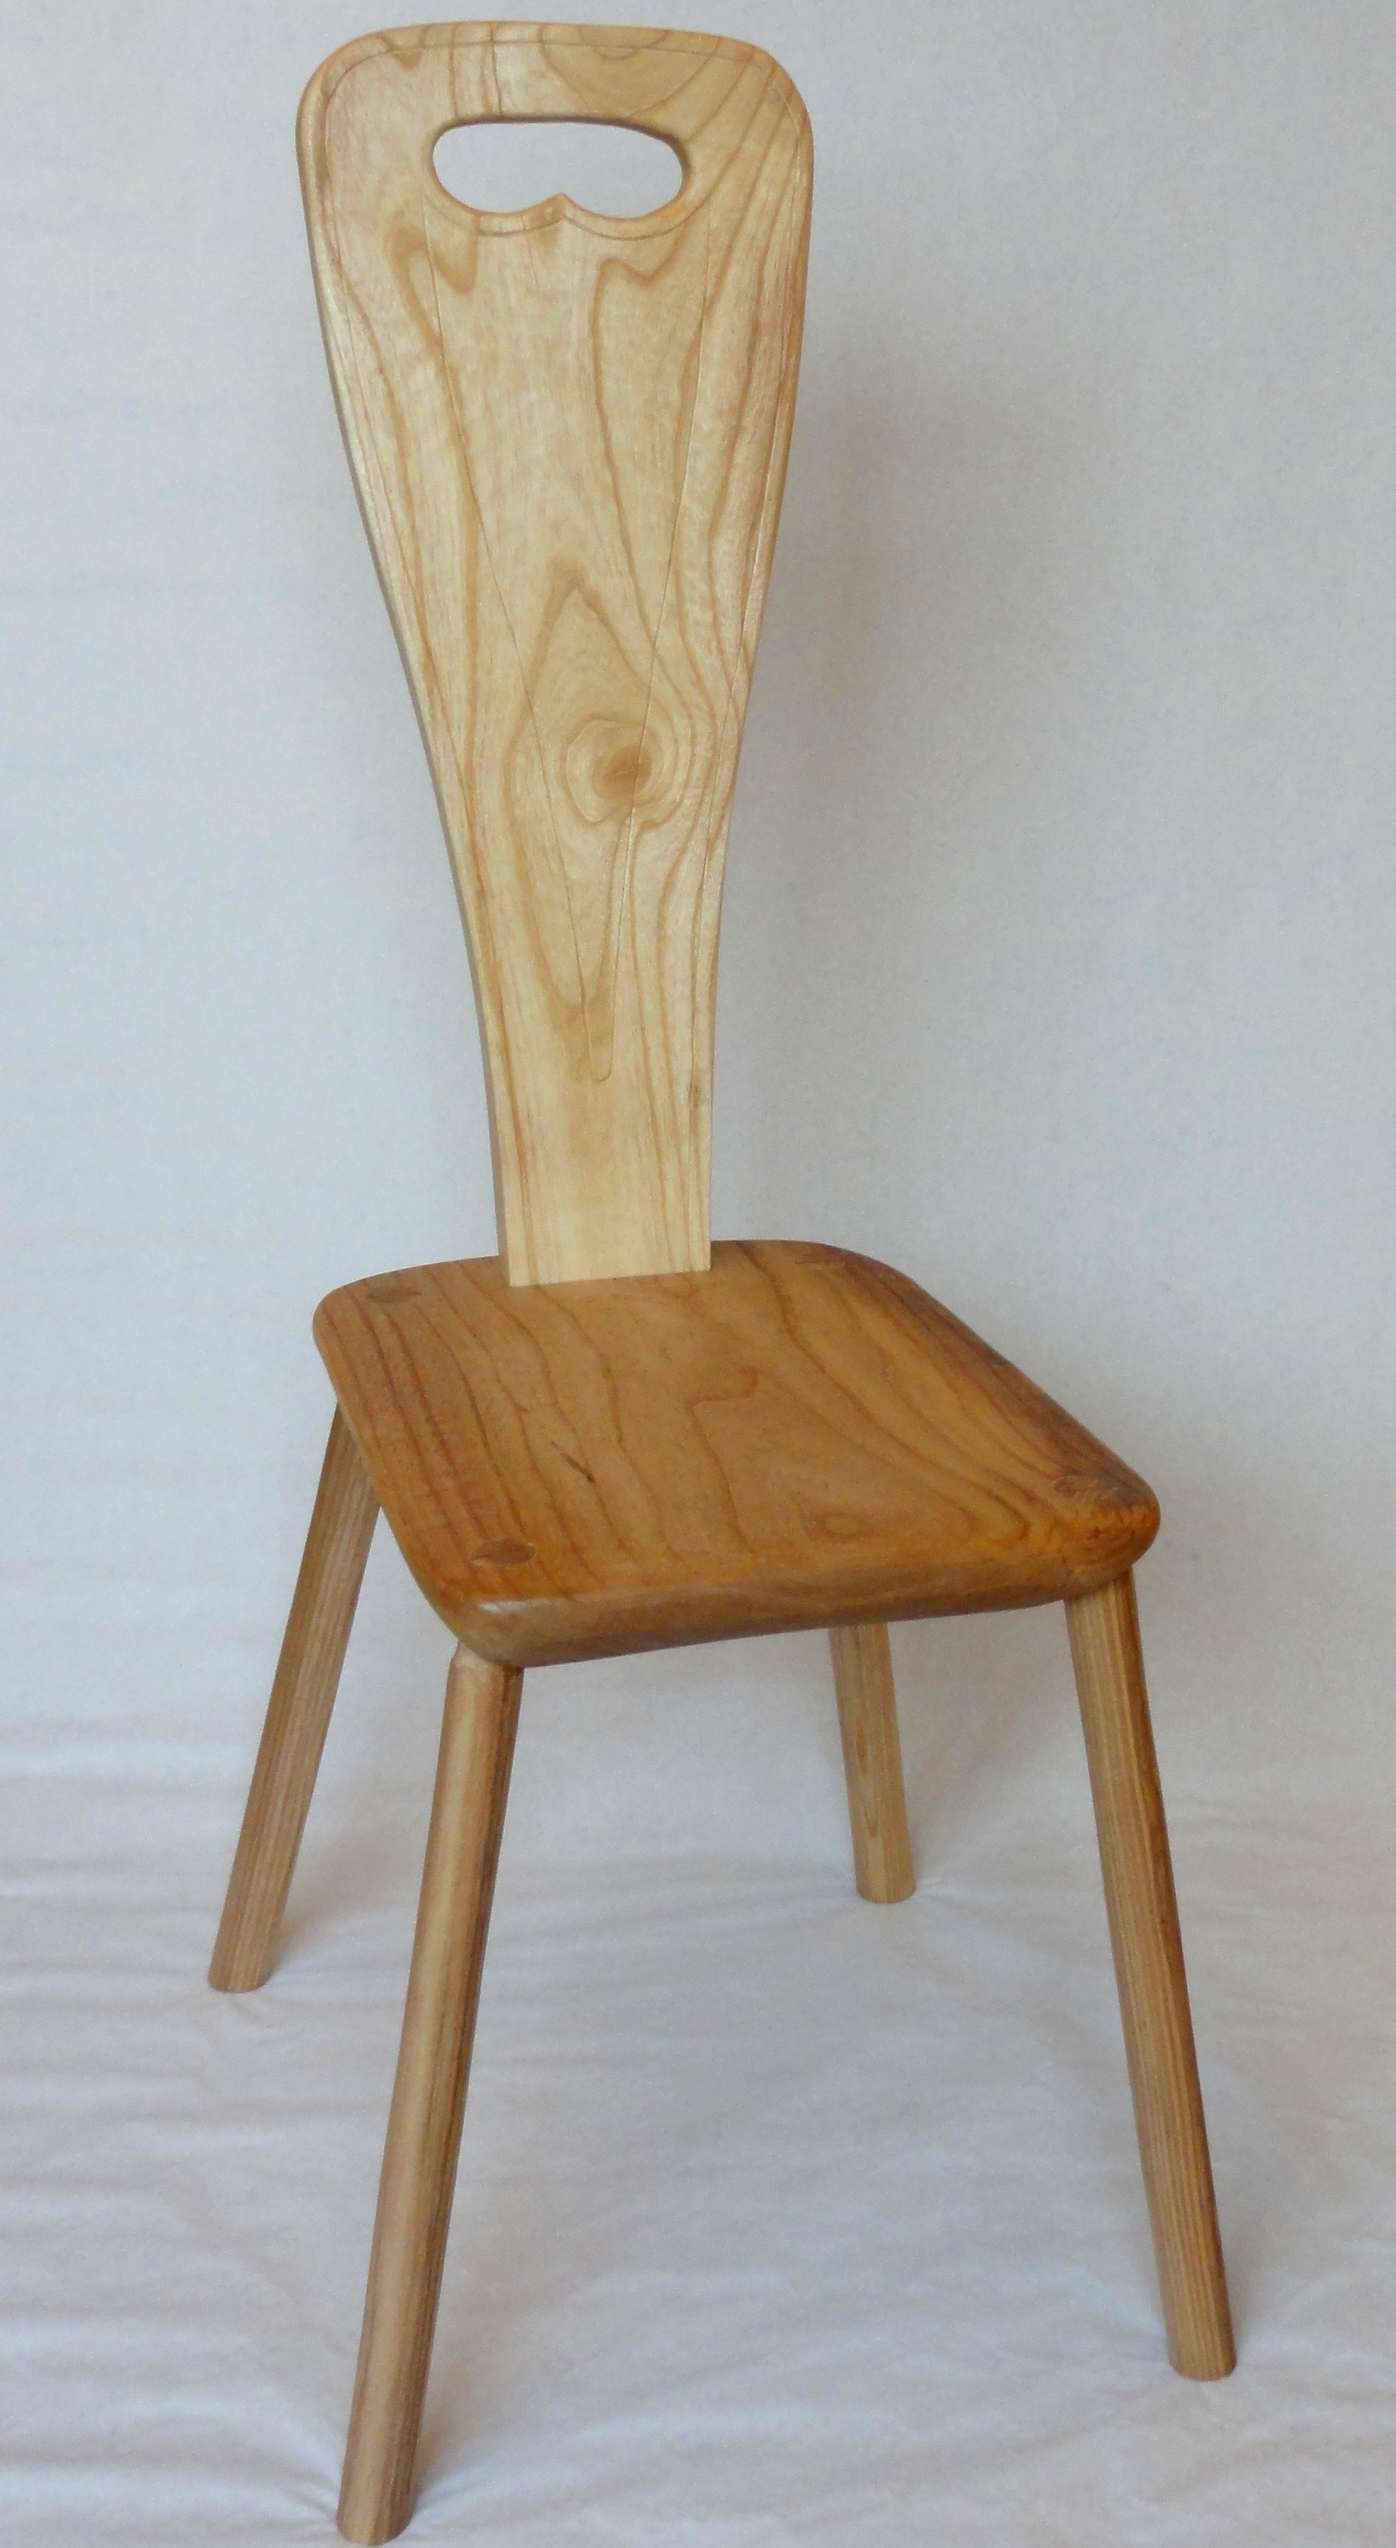 Spinning Chair Made With Our Timber Treestation